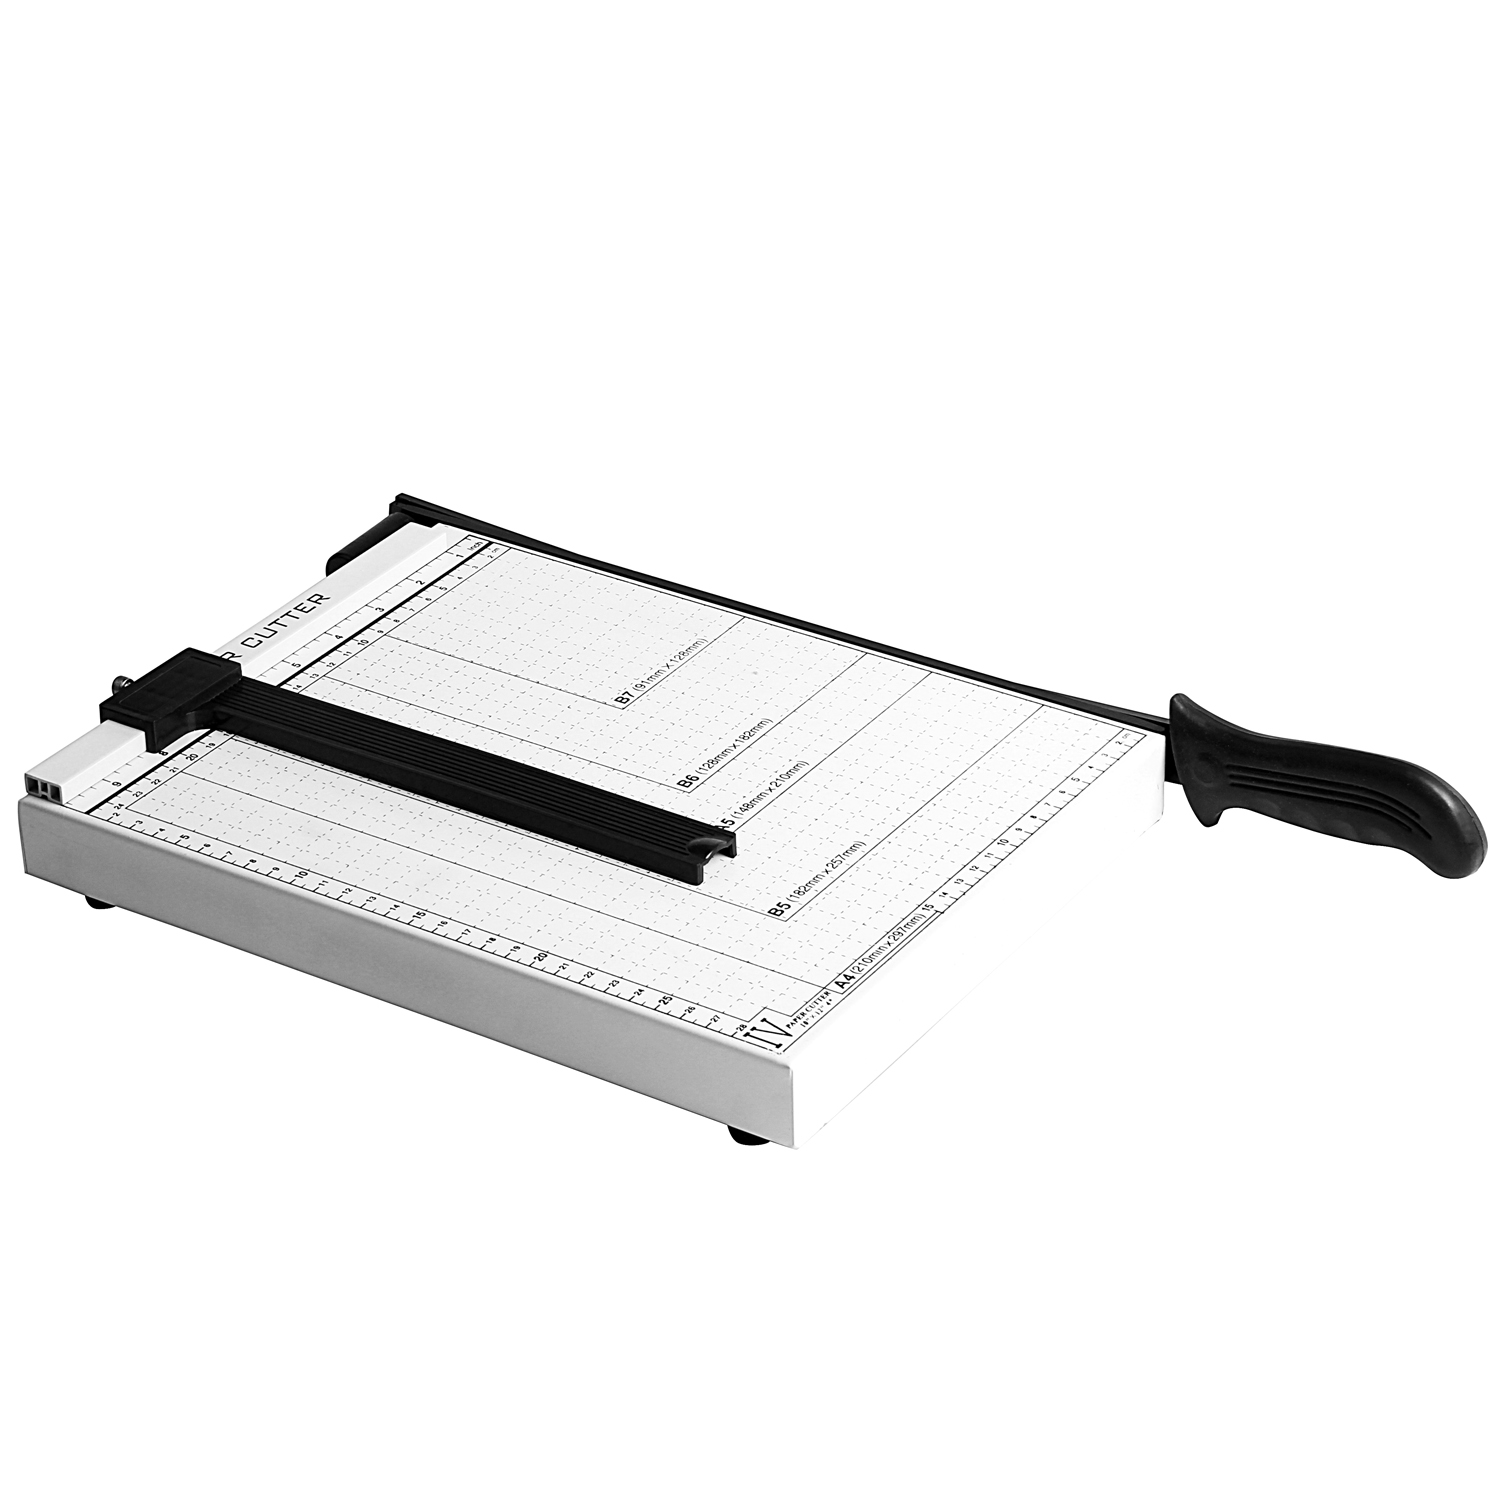 Ppyy New Office Use professional A4 Paper Card Trimmer Guillotine Photo Cutter Craft For Home